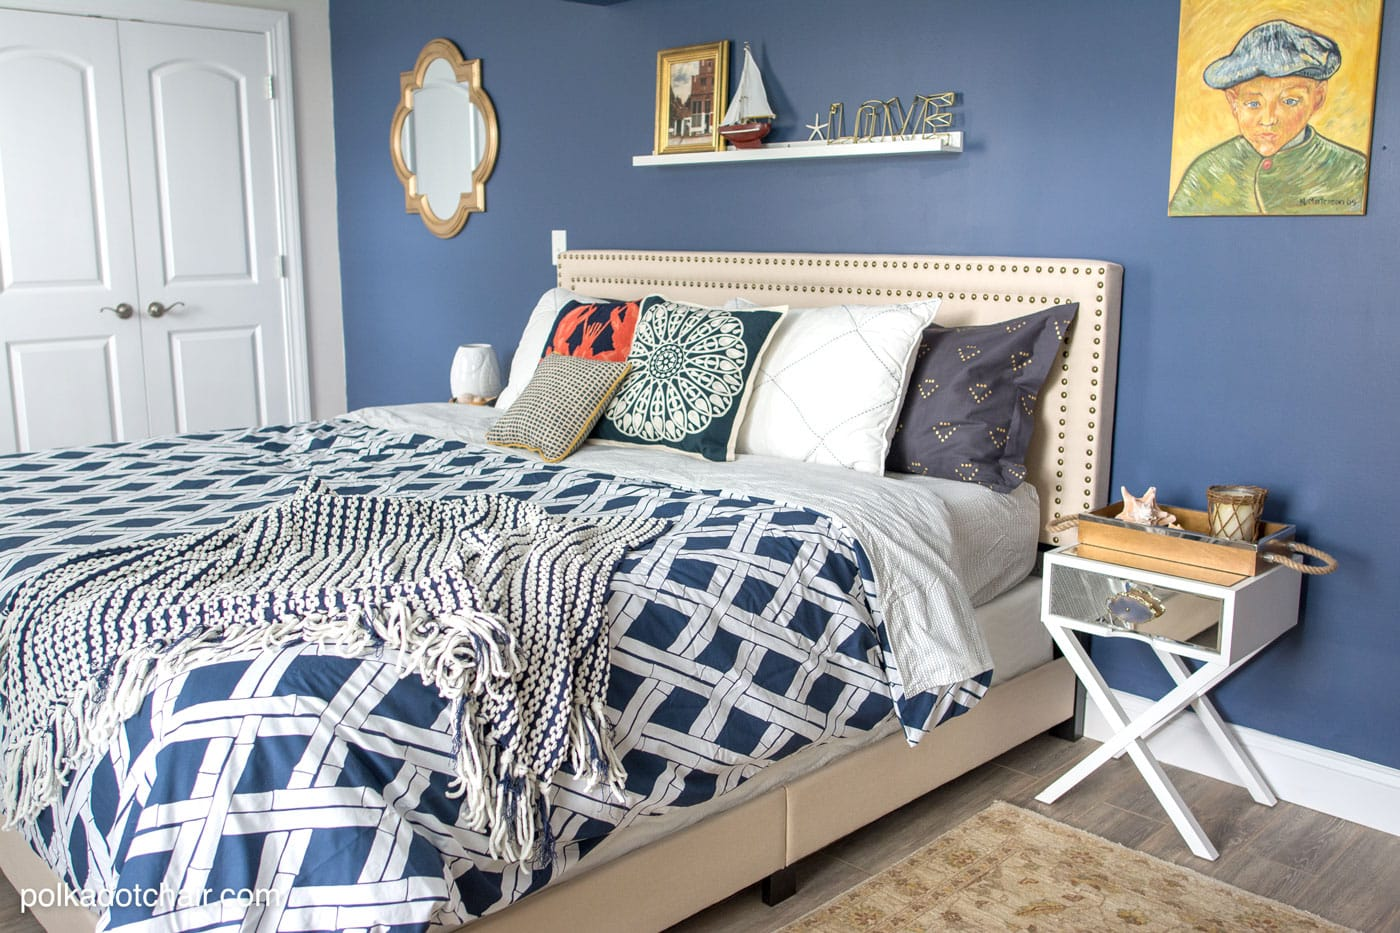 Blue and white bedroom decorating ideas and yogabed review on polkadotchair.com